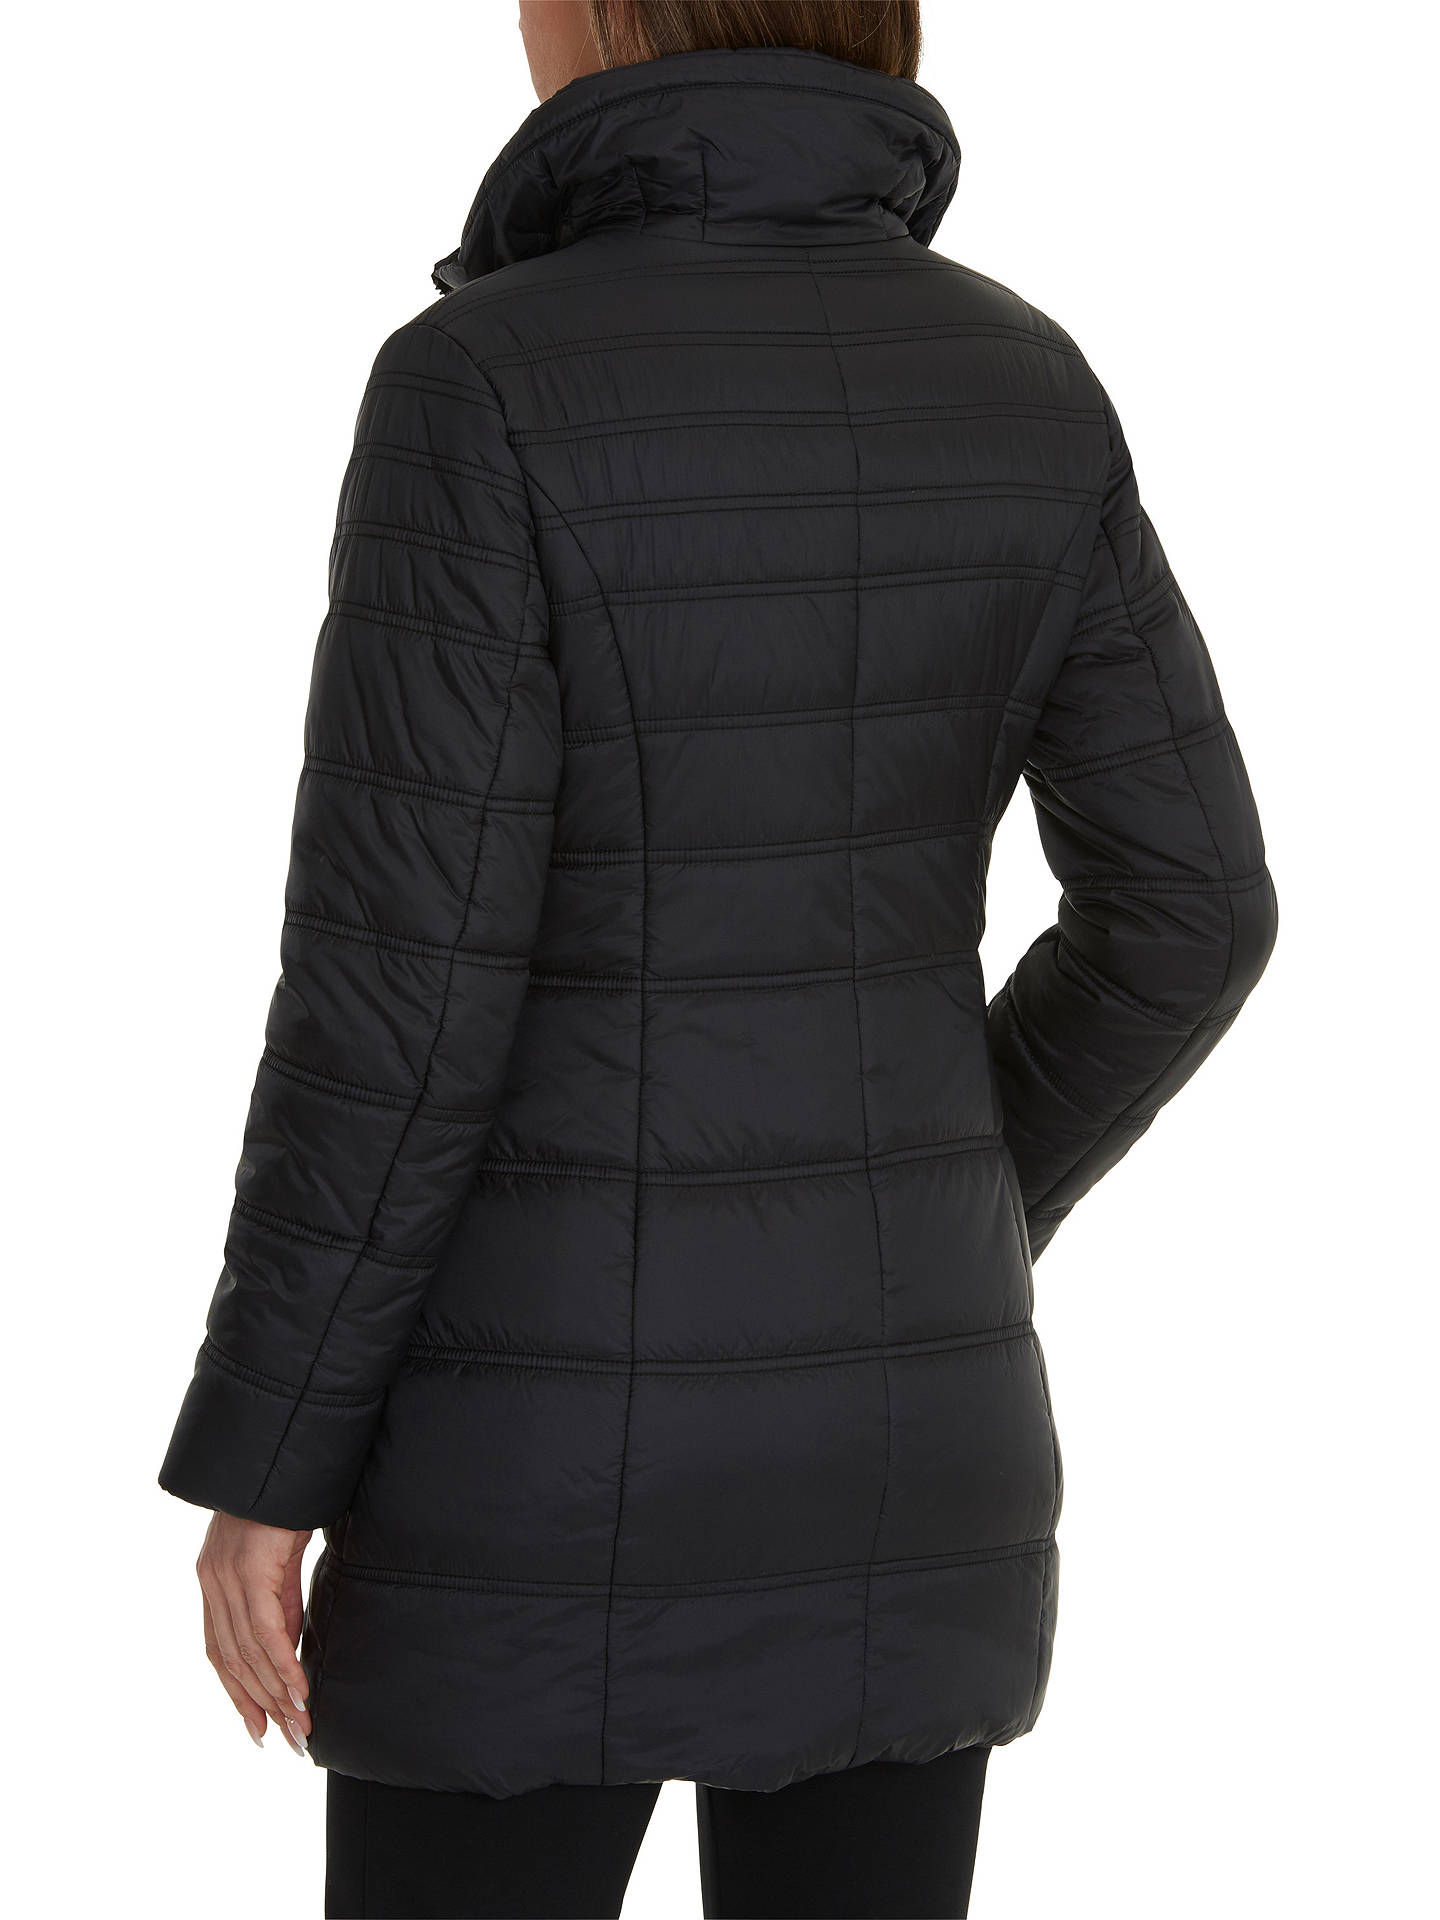 Buy Betty Barclay Puffer Coat, Black, 8 Online at johnlewis.com